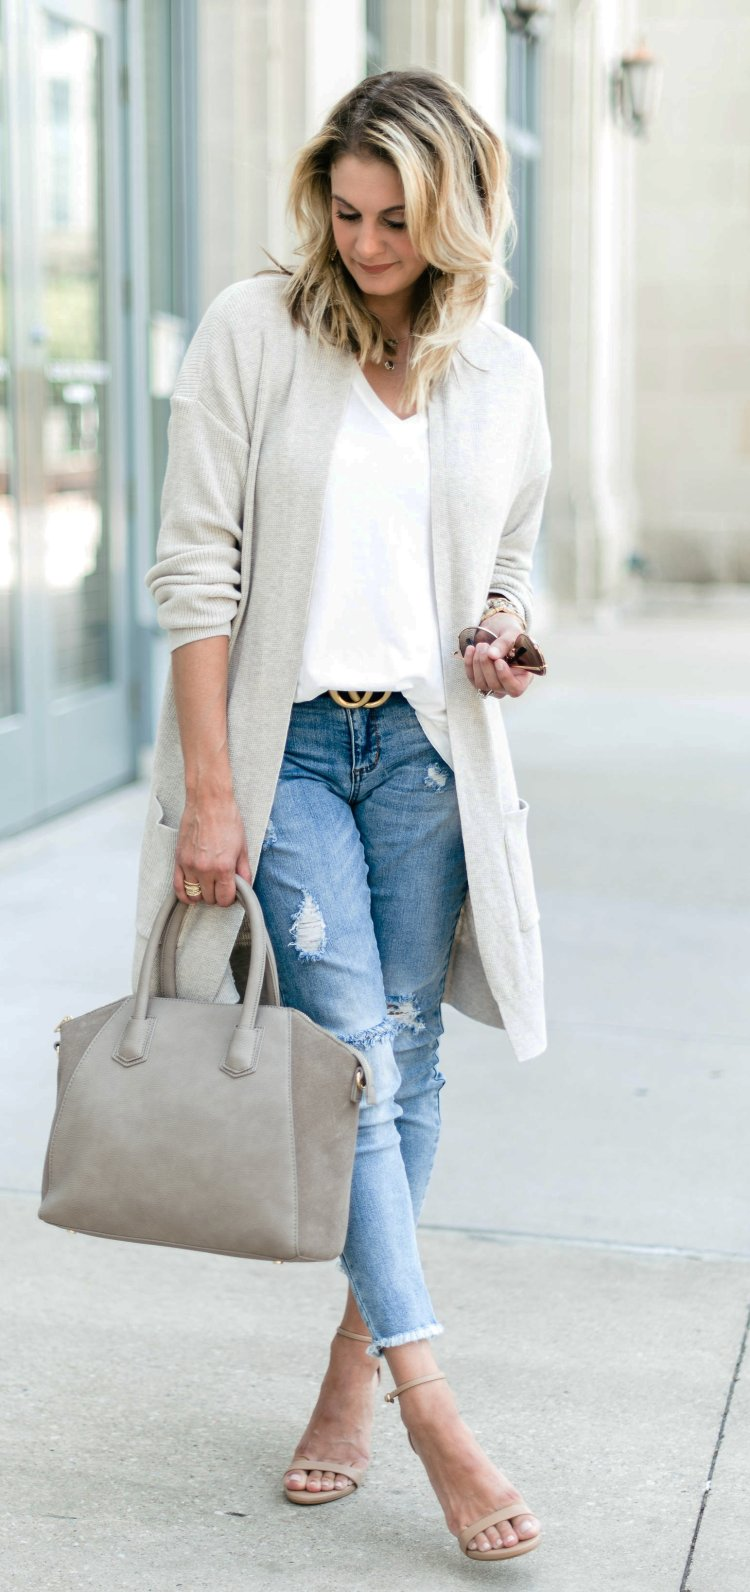 Best Fashion - Blue And White Cardigan